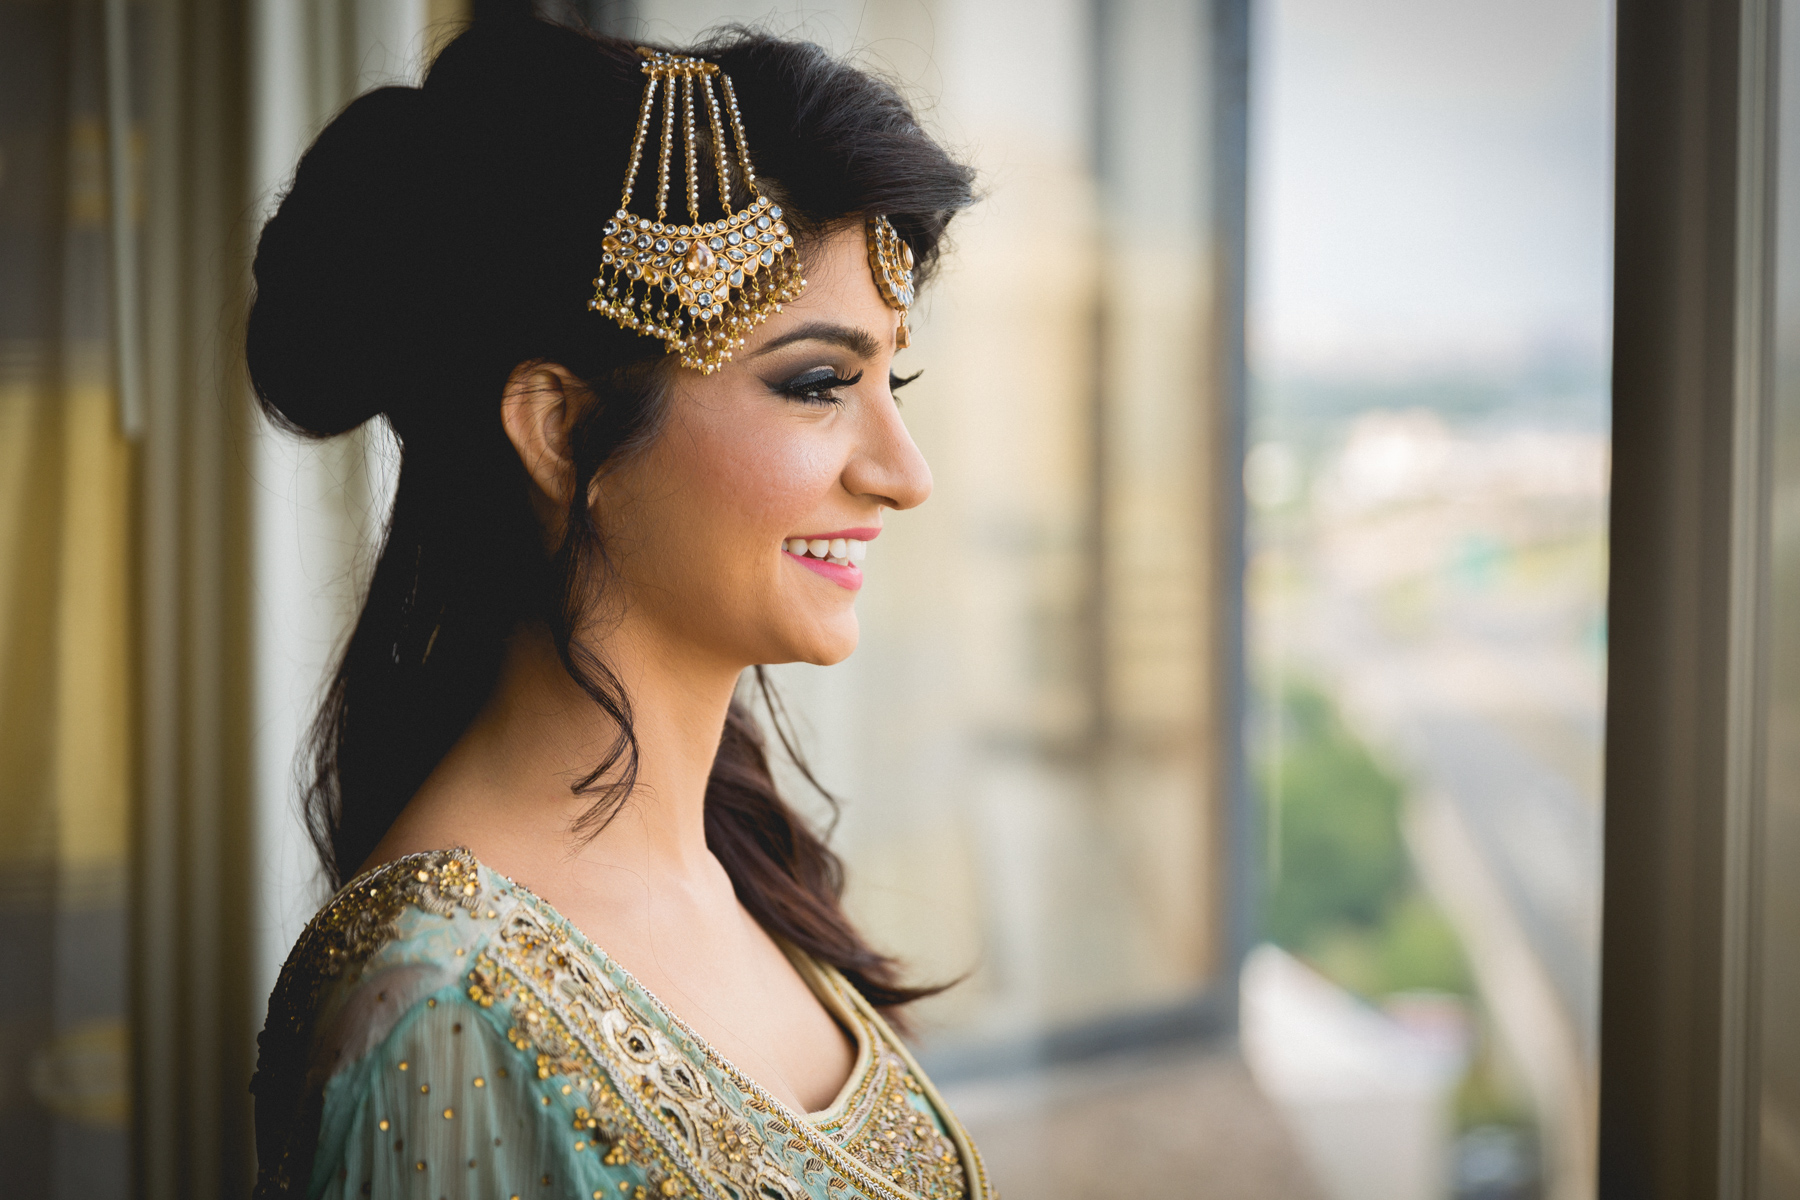 indian-south-asian-wedding-getting-ready-details-22.jpg